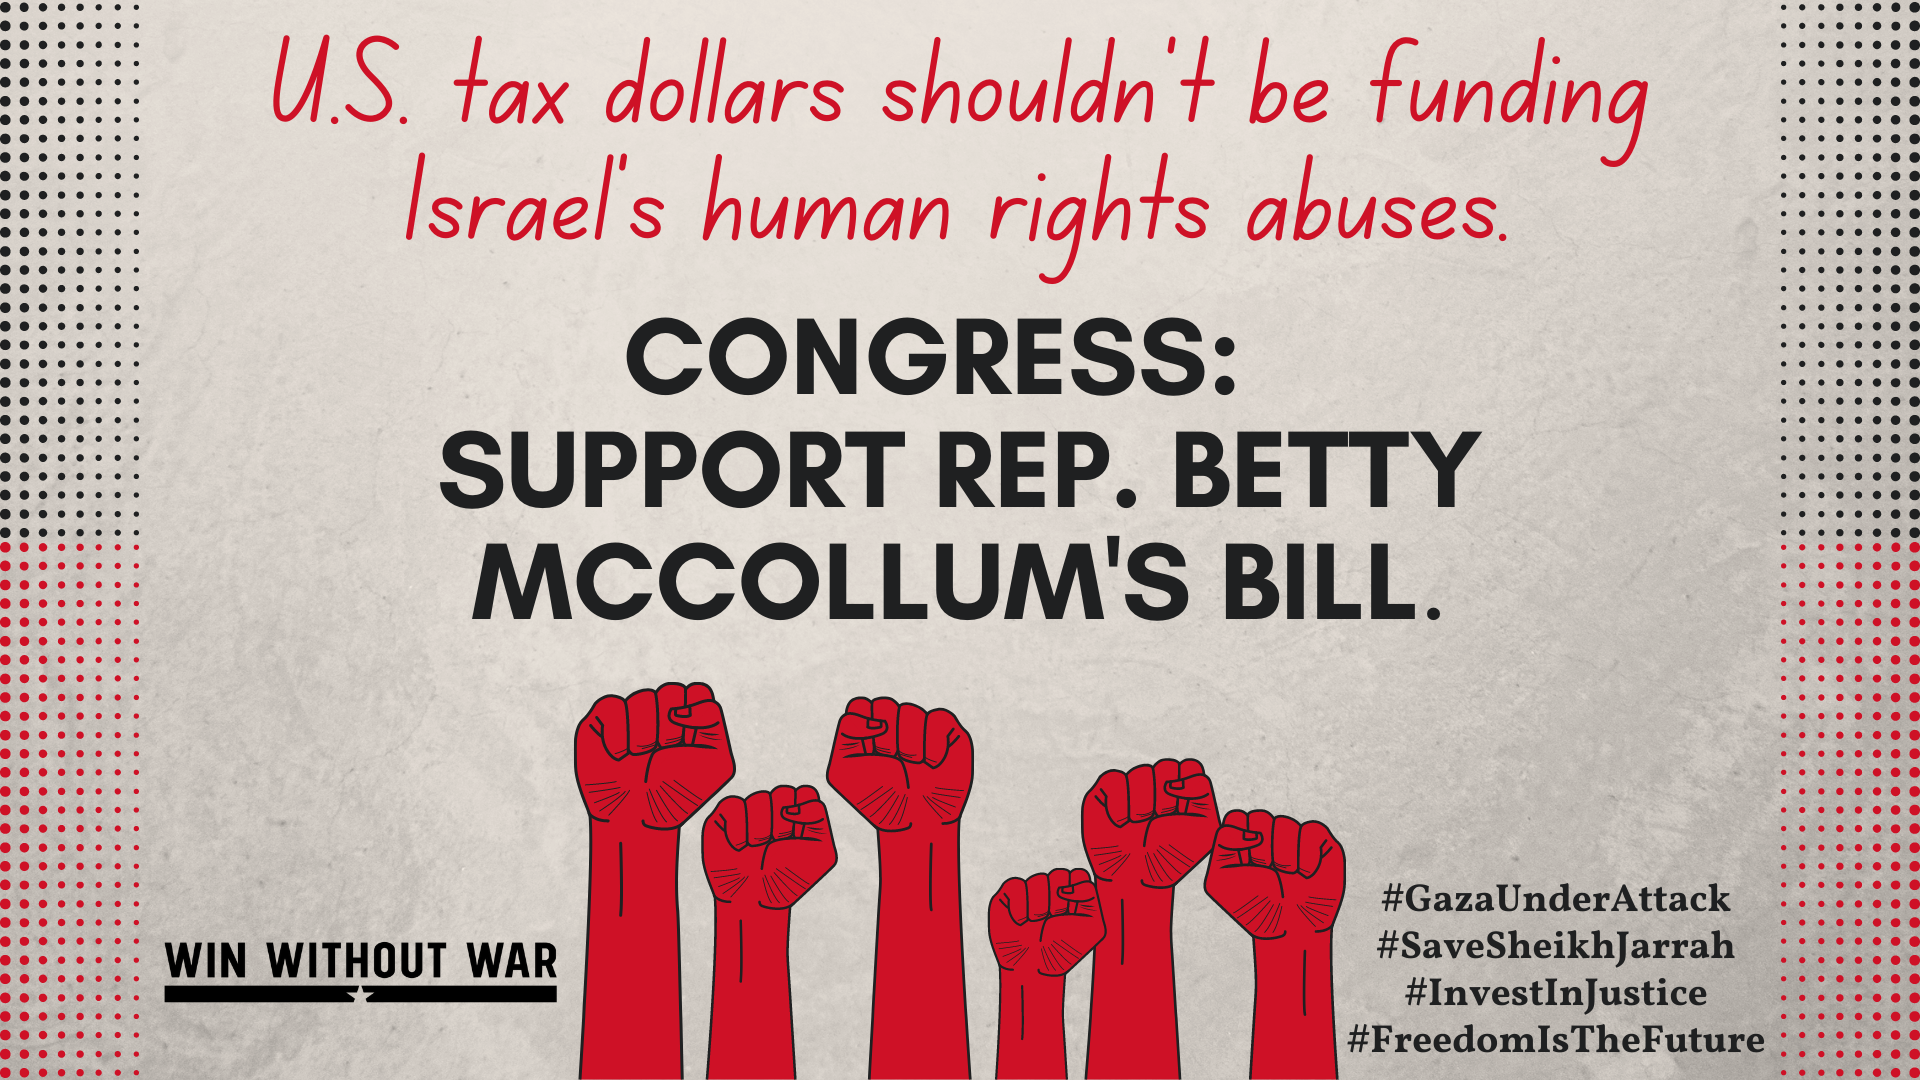 Congress: Bar unconditional military aid to Israel that enables human rights abuses!